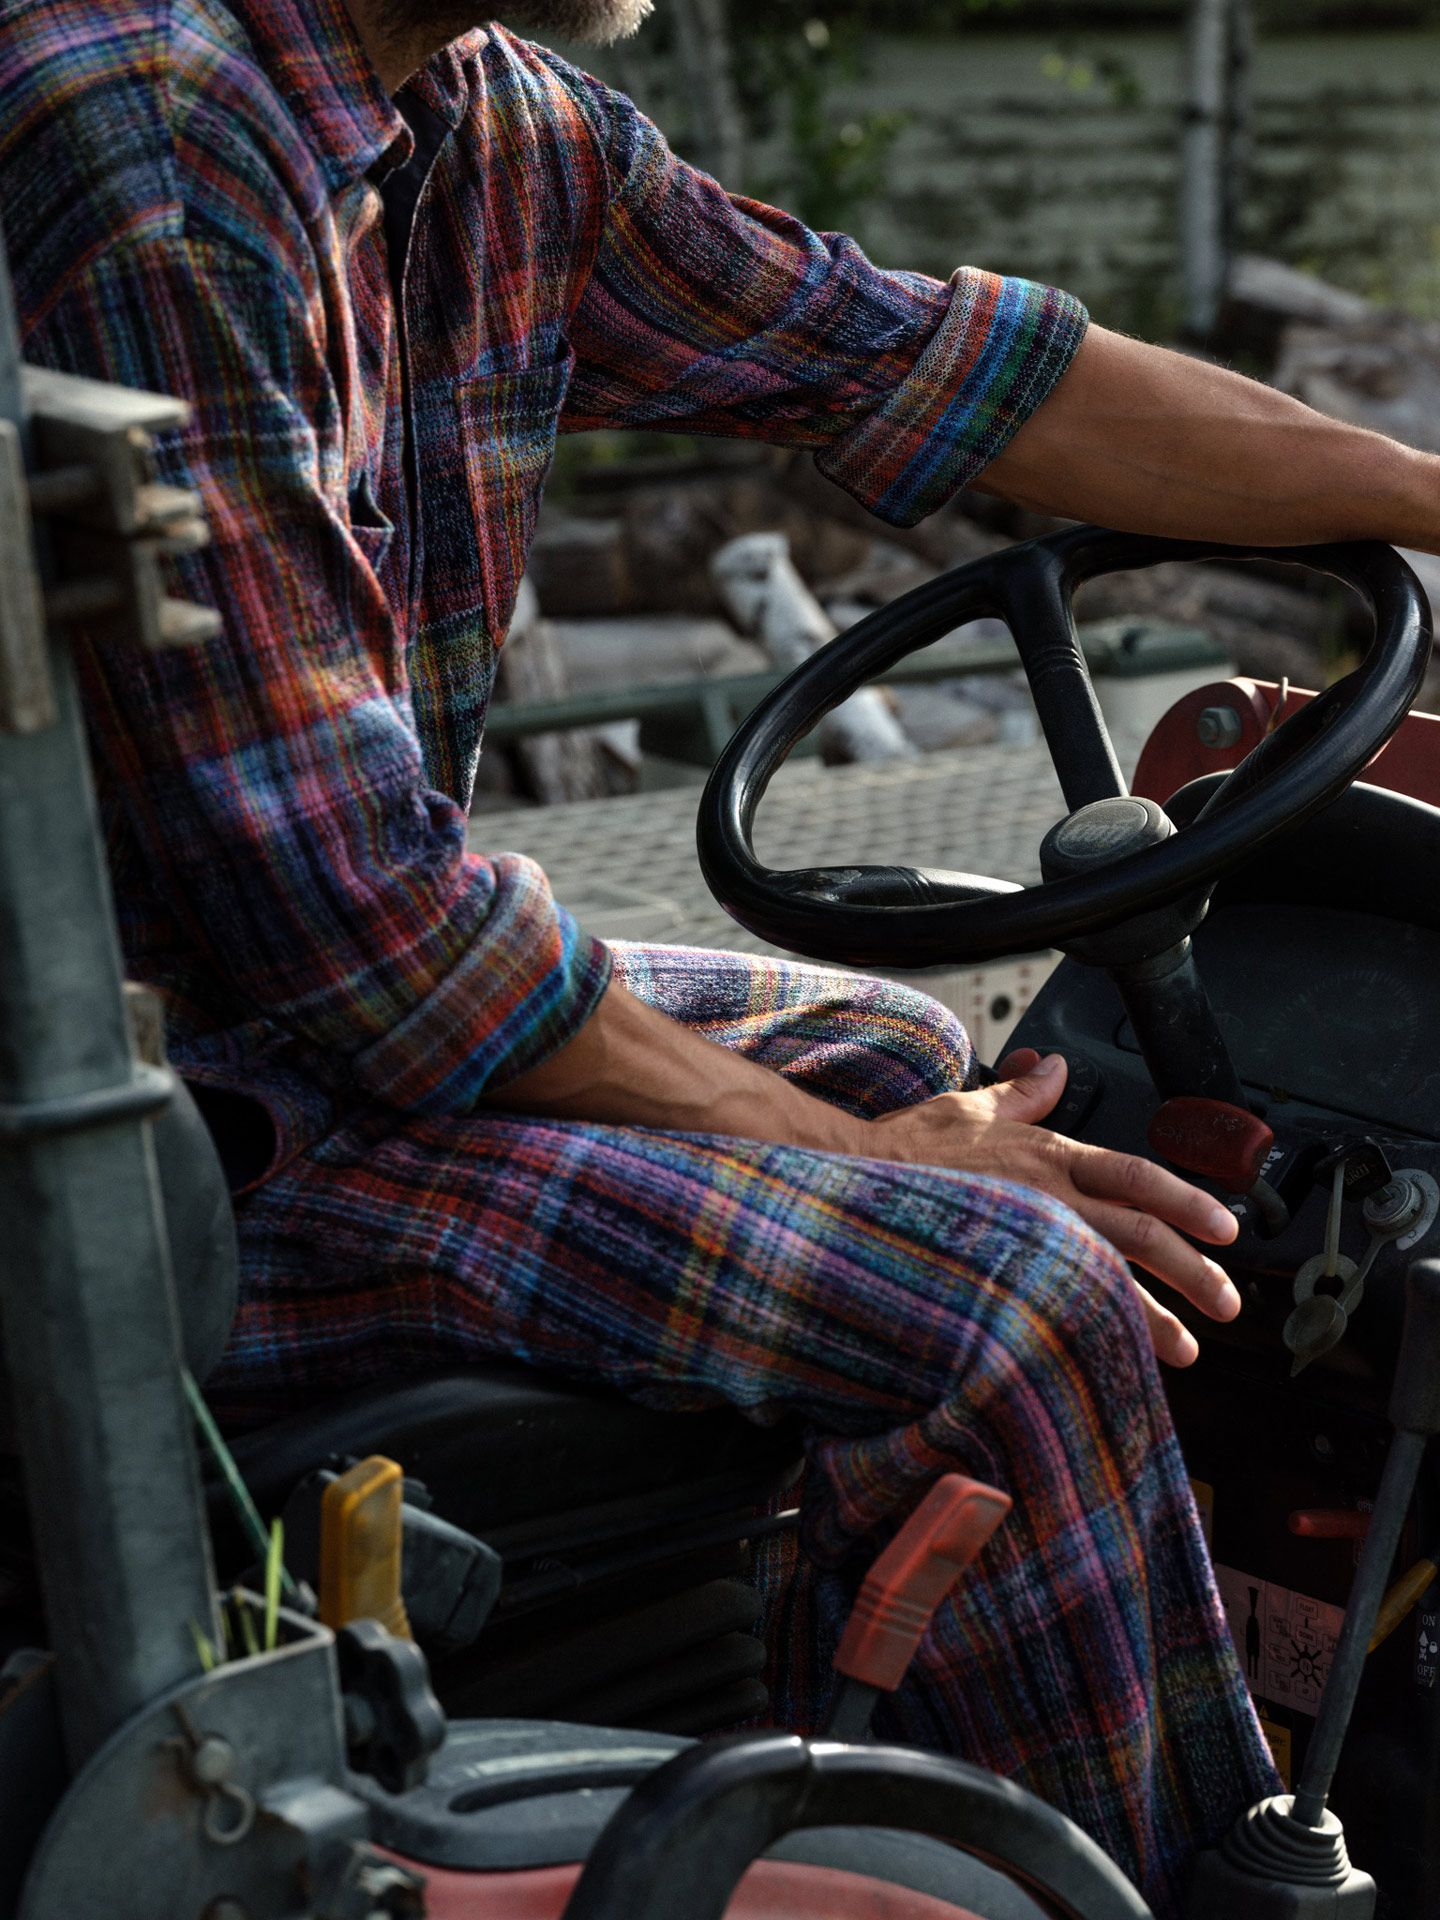 winemaker from Pinard & Filles driving his tractor by Alexi Hobbs for Larose Paris